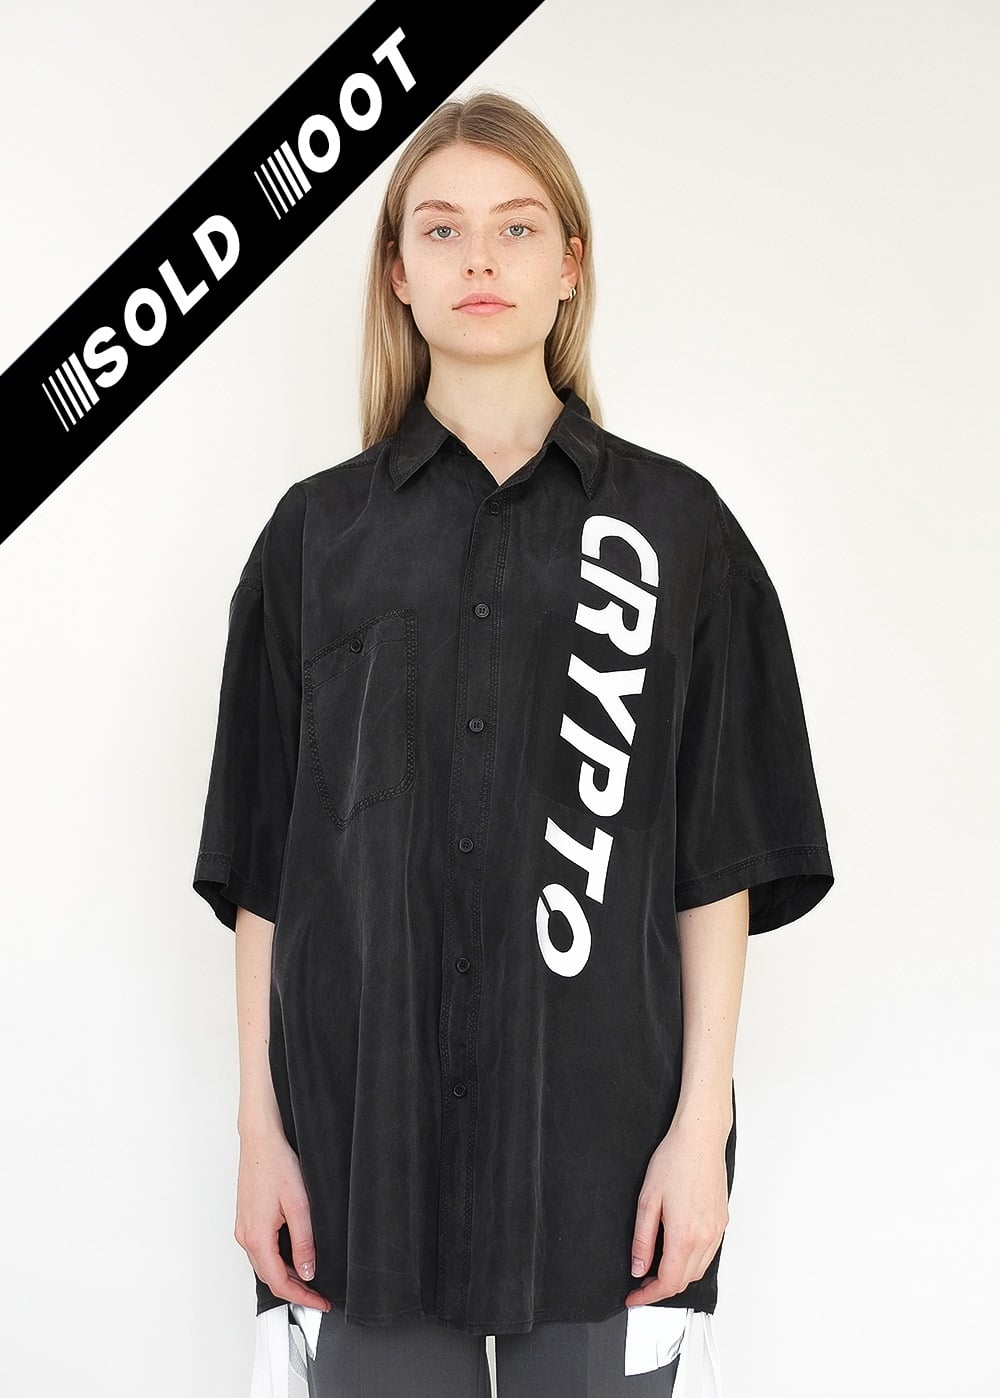 Reflective Crypto Silk Shirt 340